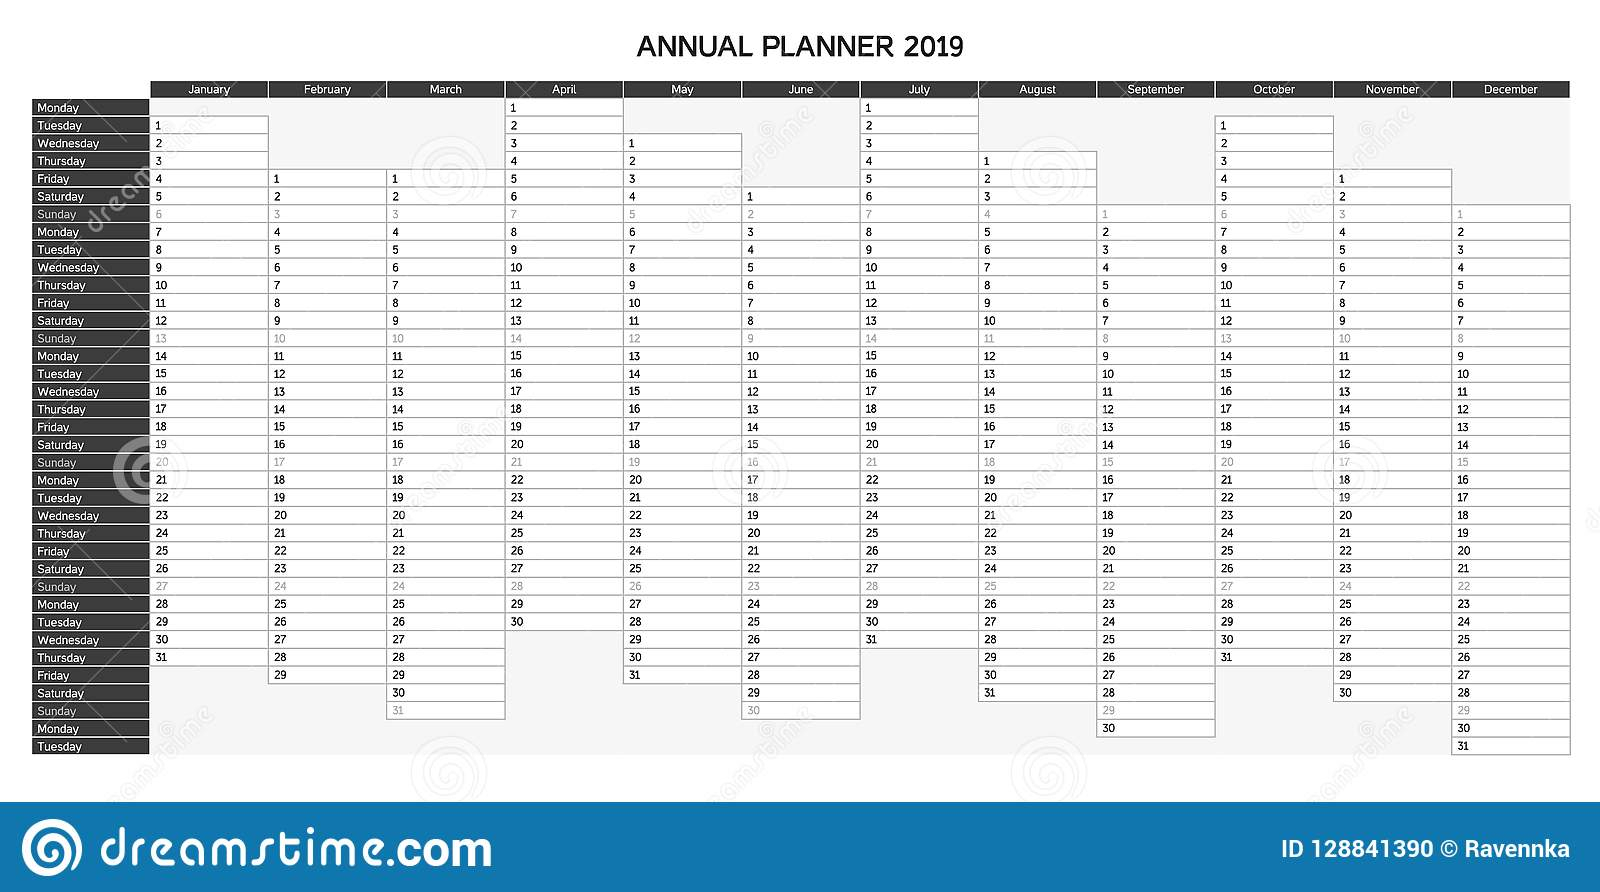 Year Planning Calendar For 2019 In English - Annual Planner